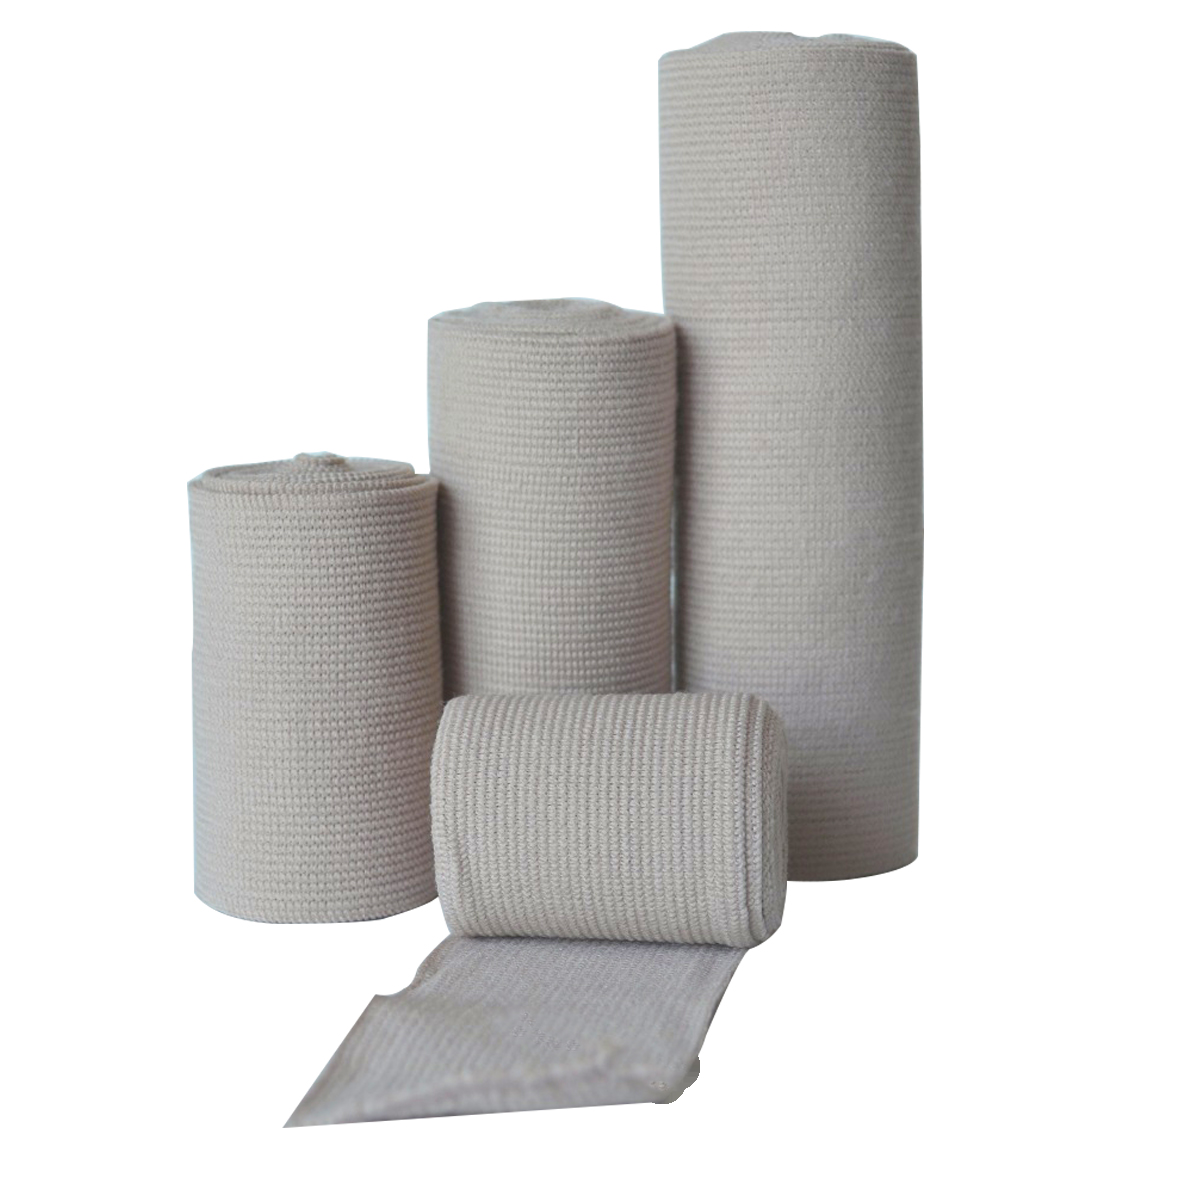 24Set/96Pcs PTB Bandages for Emergency Kit Non-woven Plaster First Aid Kit Supplies Medical Tape 15cm 10cm 7.5cm 5cm Mixed 24set 96pcs ptb bandages for emergency kit non woven plaster first aid kit supplies medical tape 15cm 10cm 7 5cm 5cm mixed